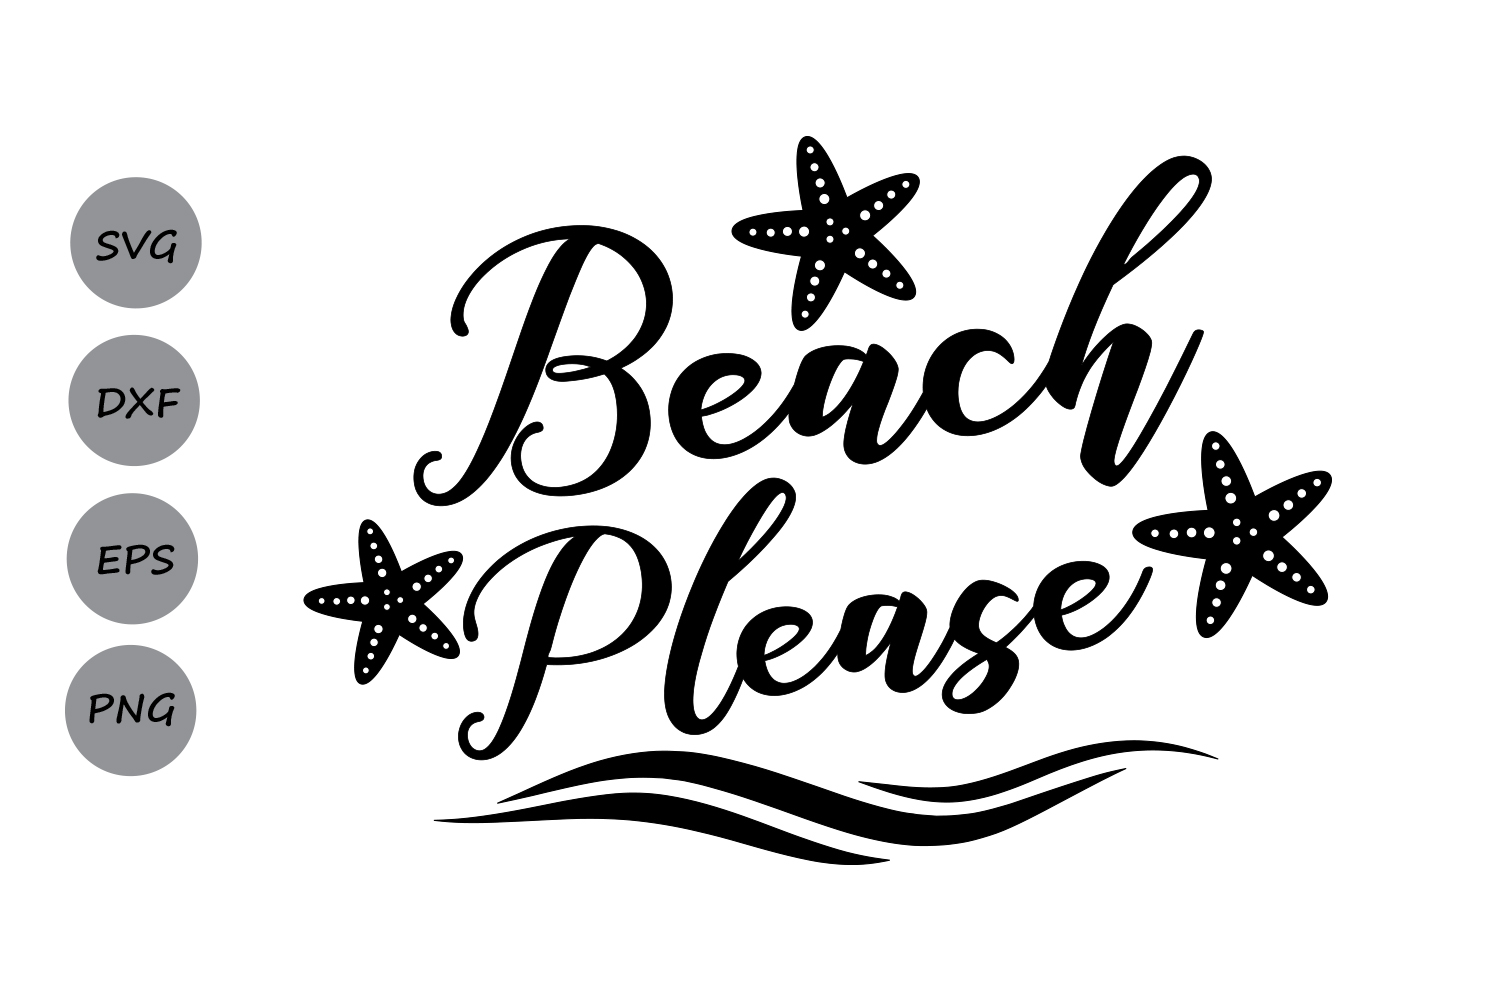 beach please svg #1013, Download drawings